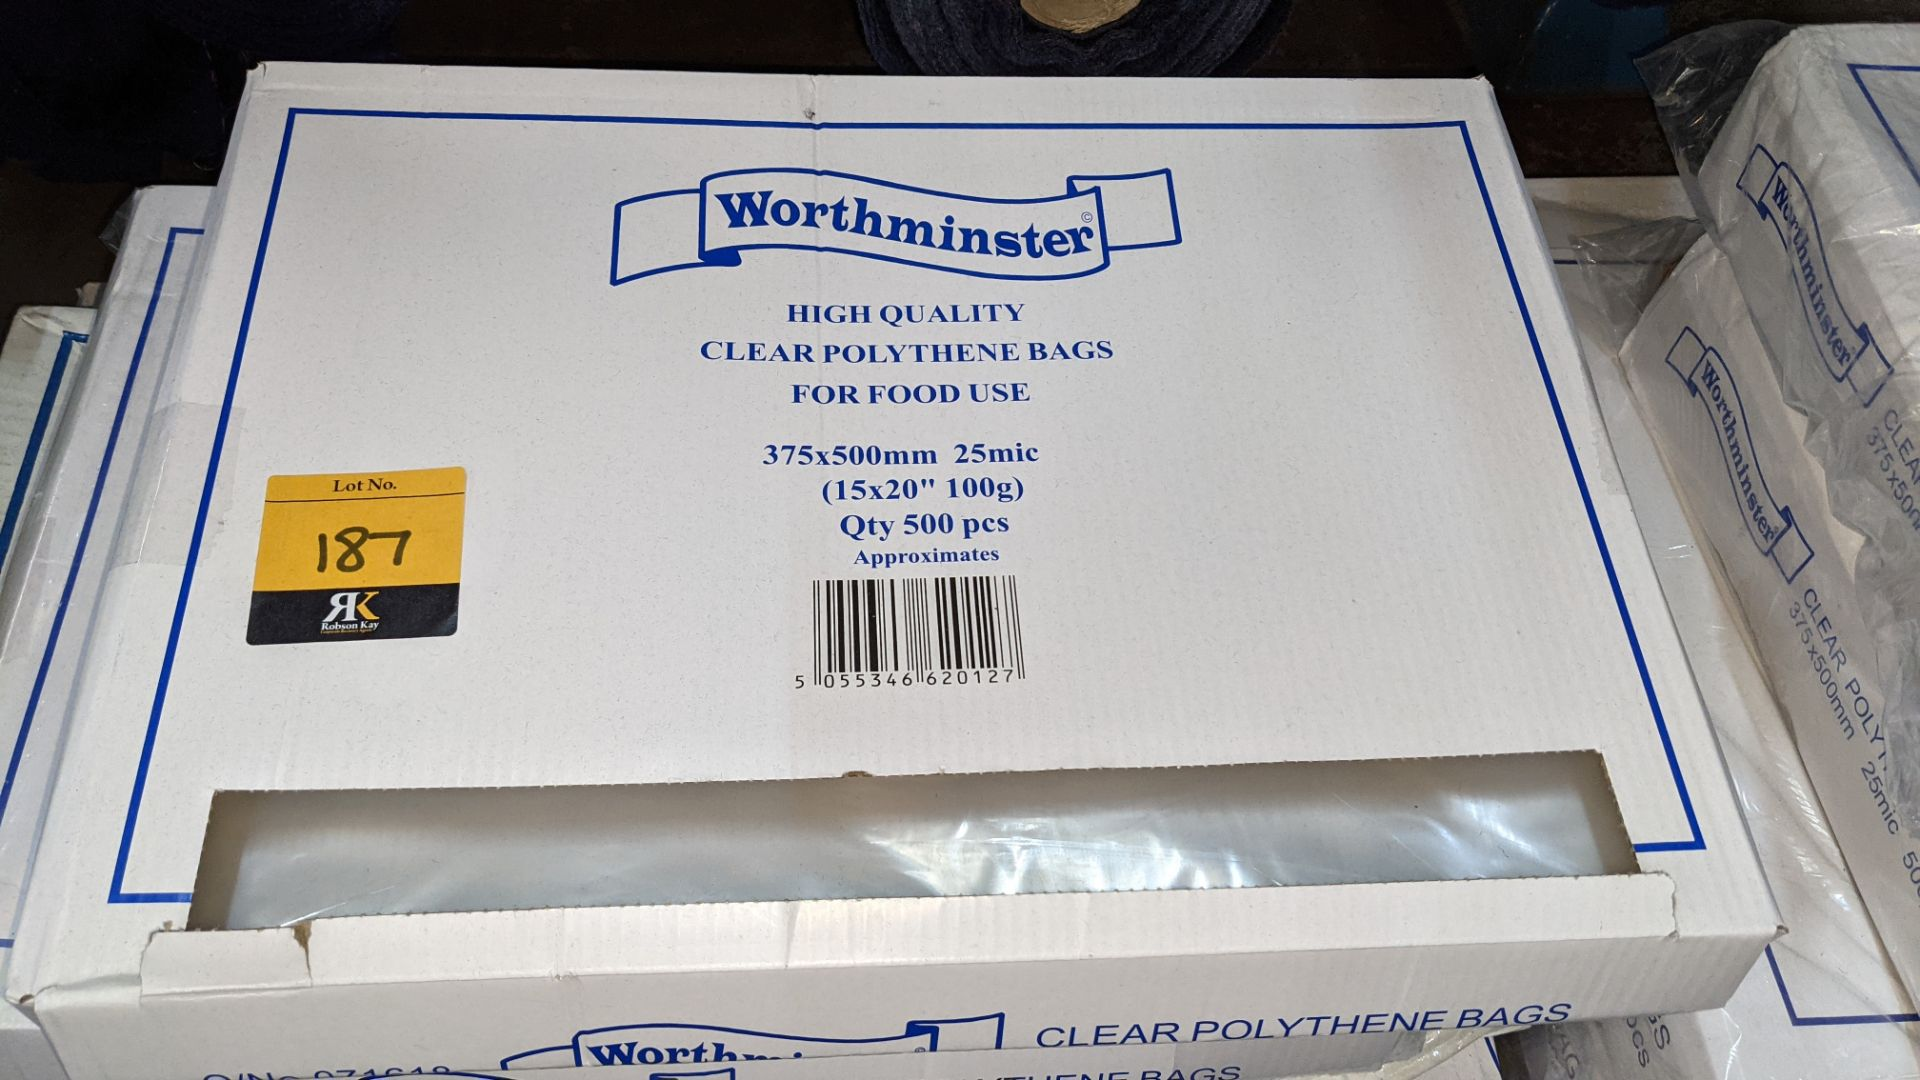 4 boxes of clear food bags by Worthminster - Image 3 of 6